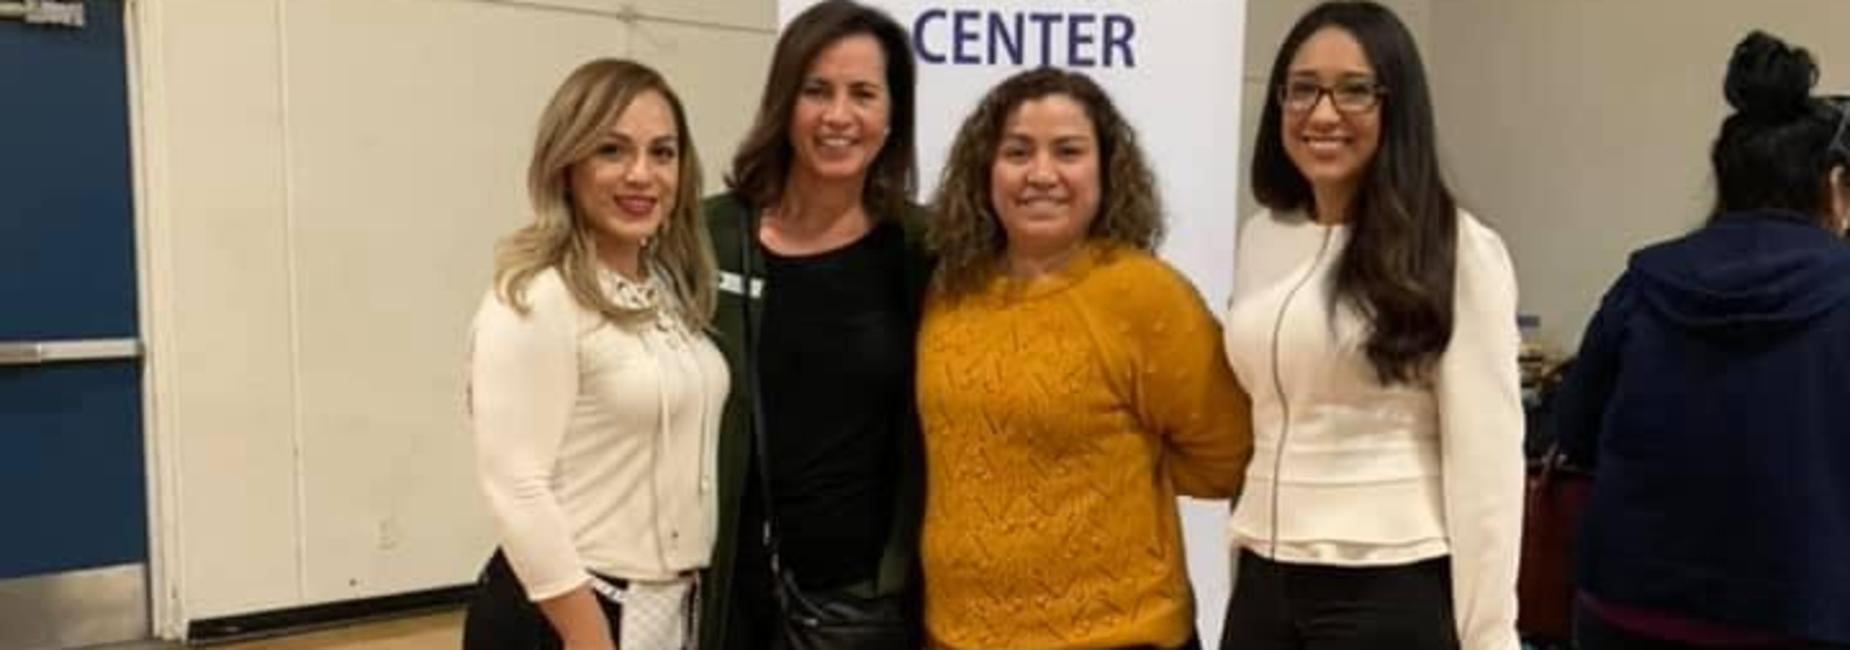 HUSD District liaison, Assistant Superintendent, Administrative Secretary and Parent Engagement Specialist pose for a picture during the Family Festival 2020